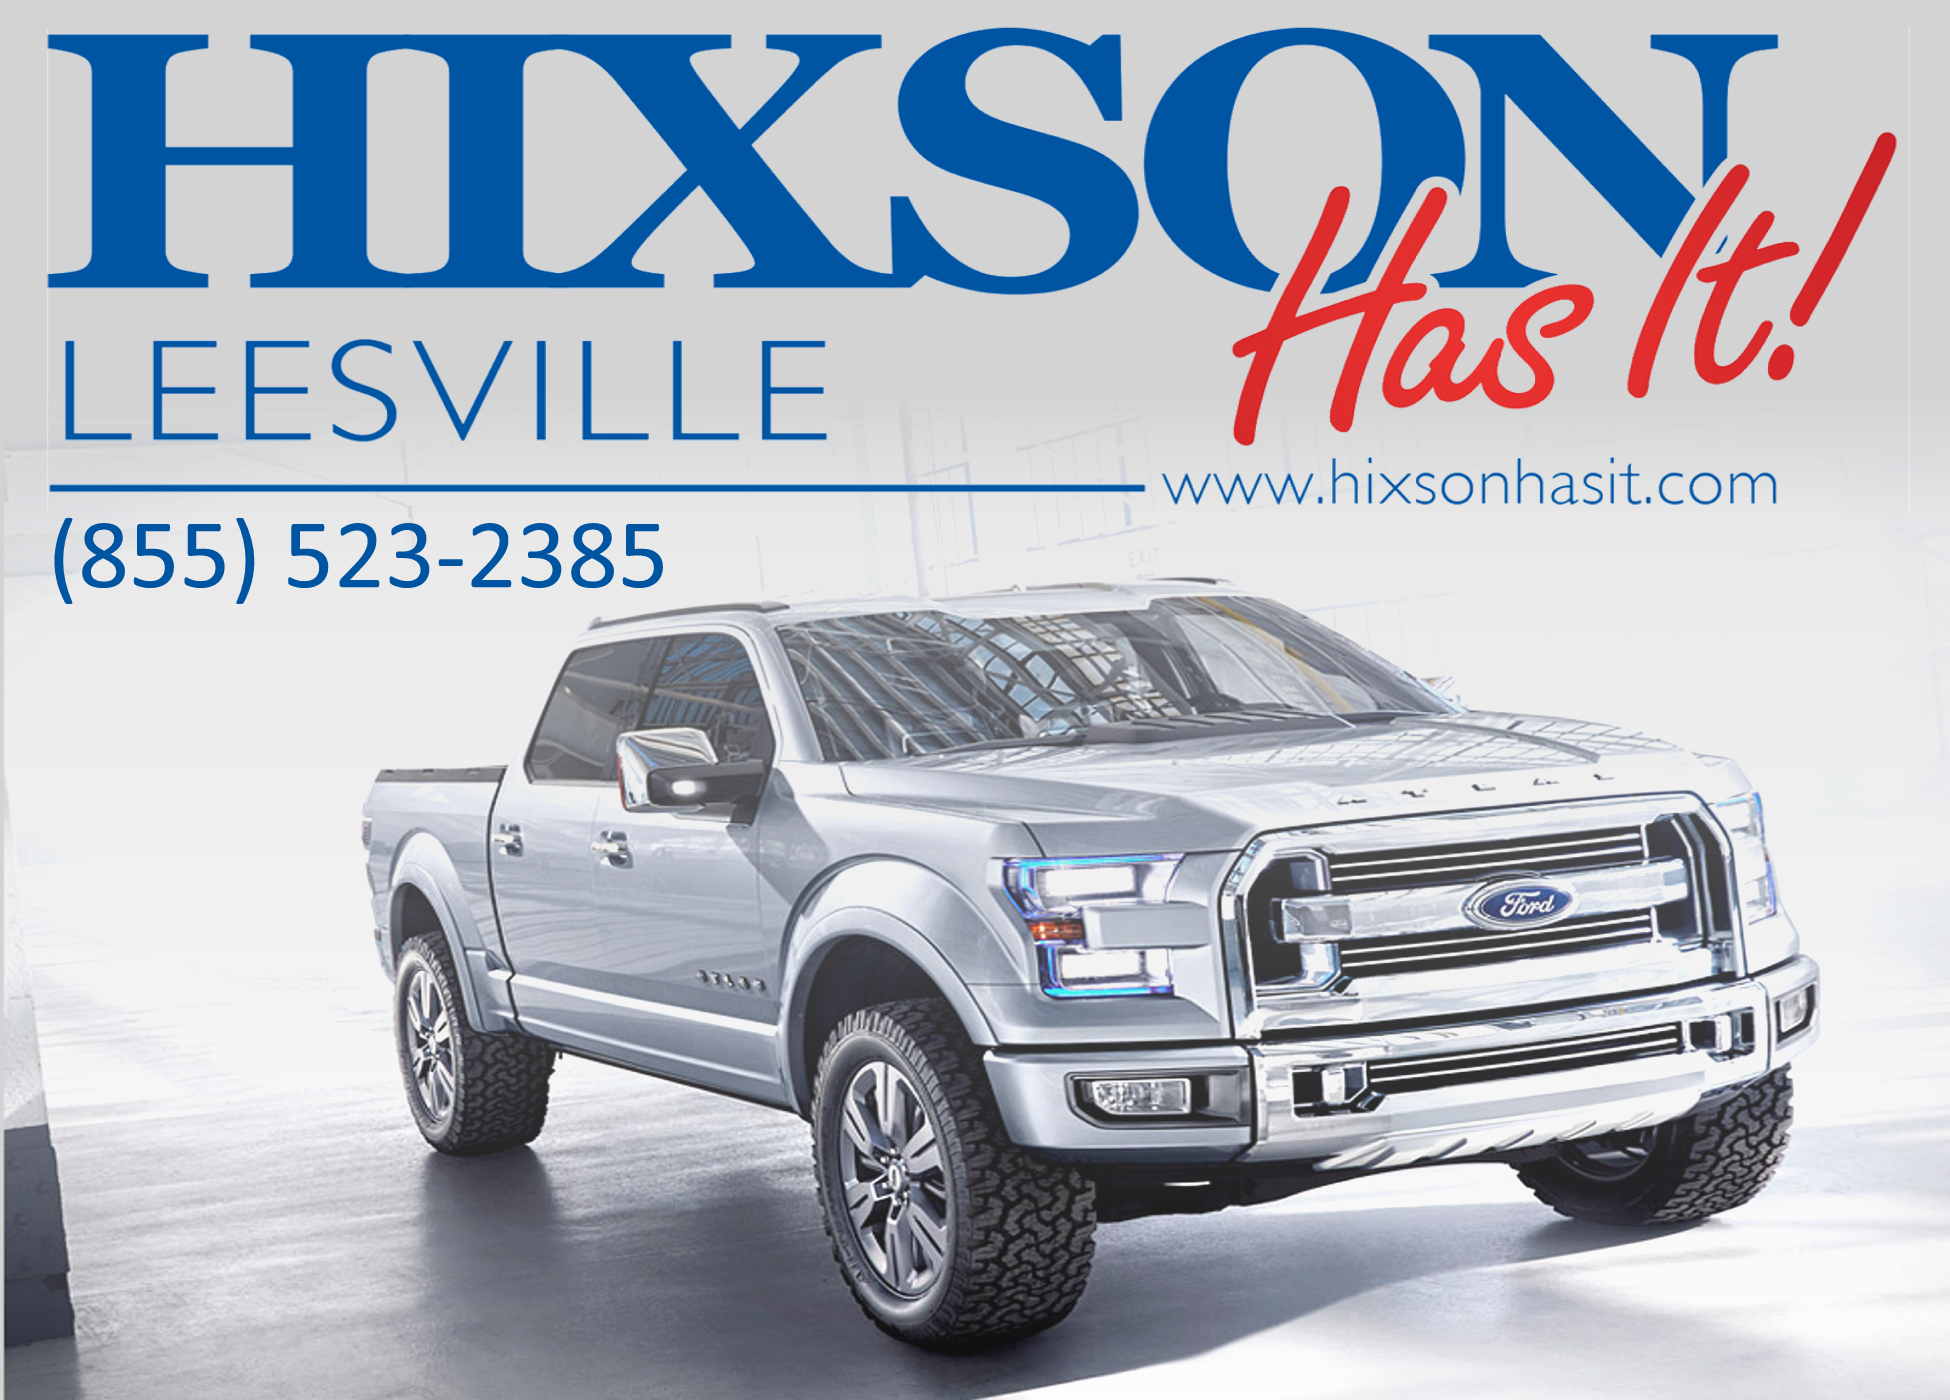 ford leesville customer reviews testimonials page 1. Cars Review. Best American Auto & Cars Review